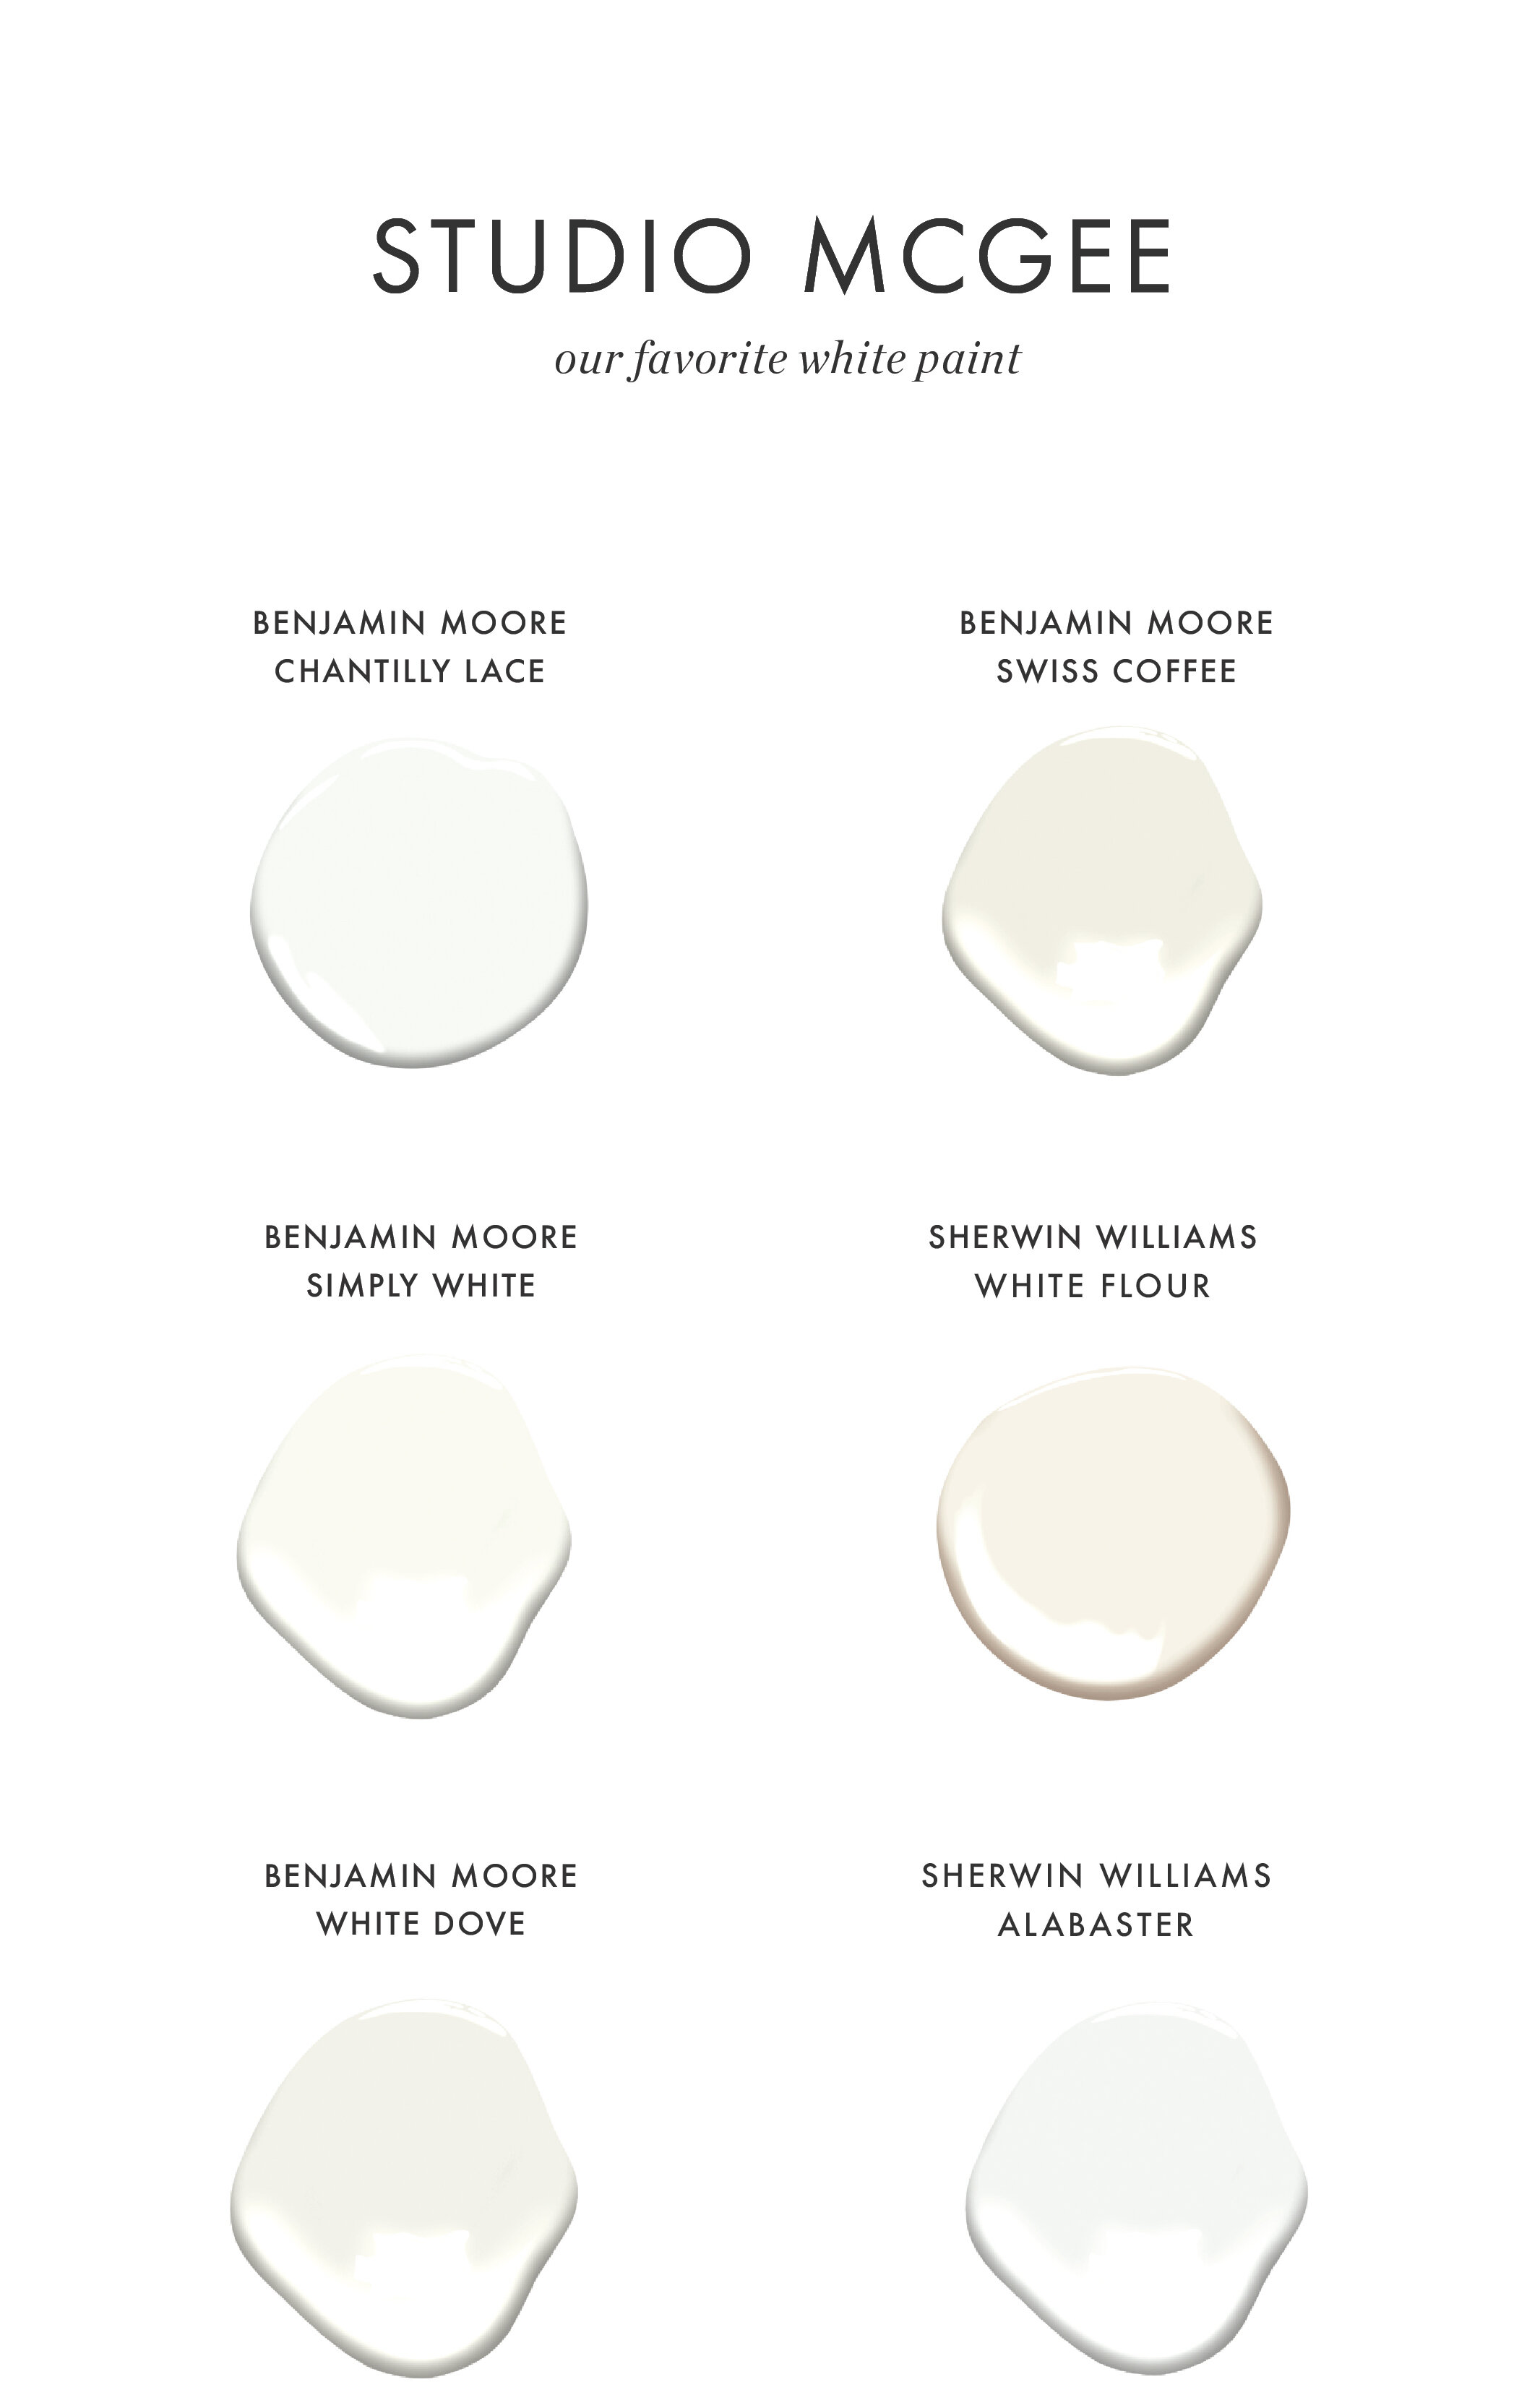 The Best White Paint Colors For Every Home,Good Plants To Grow Indoors In Winter